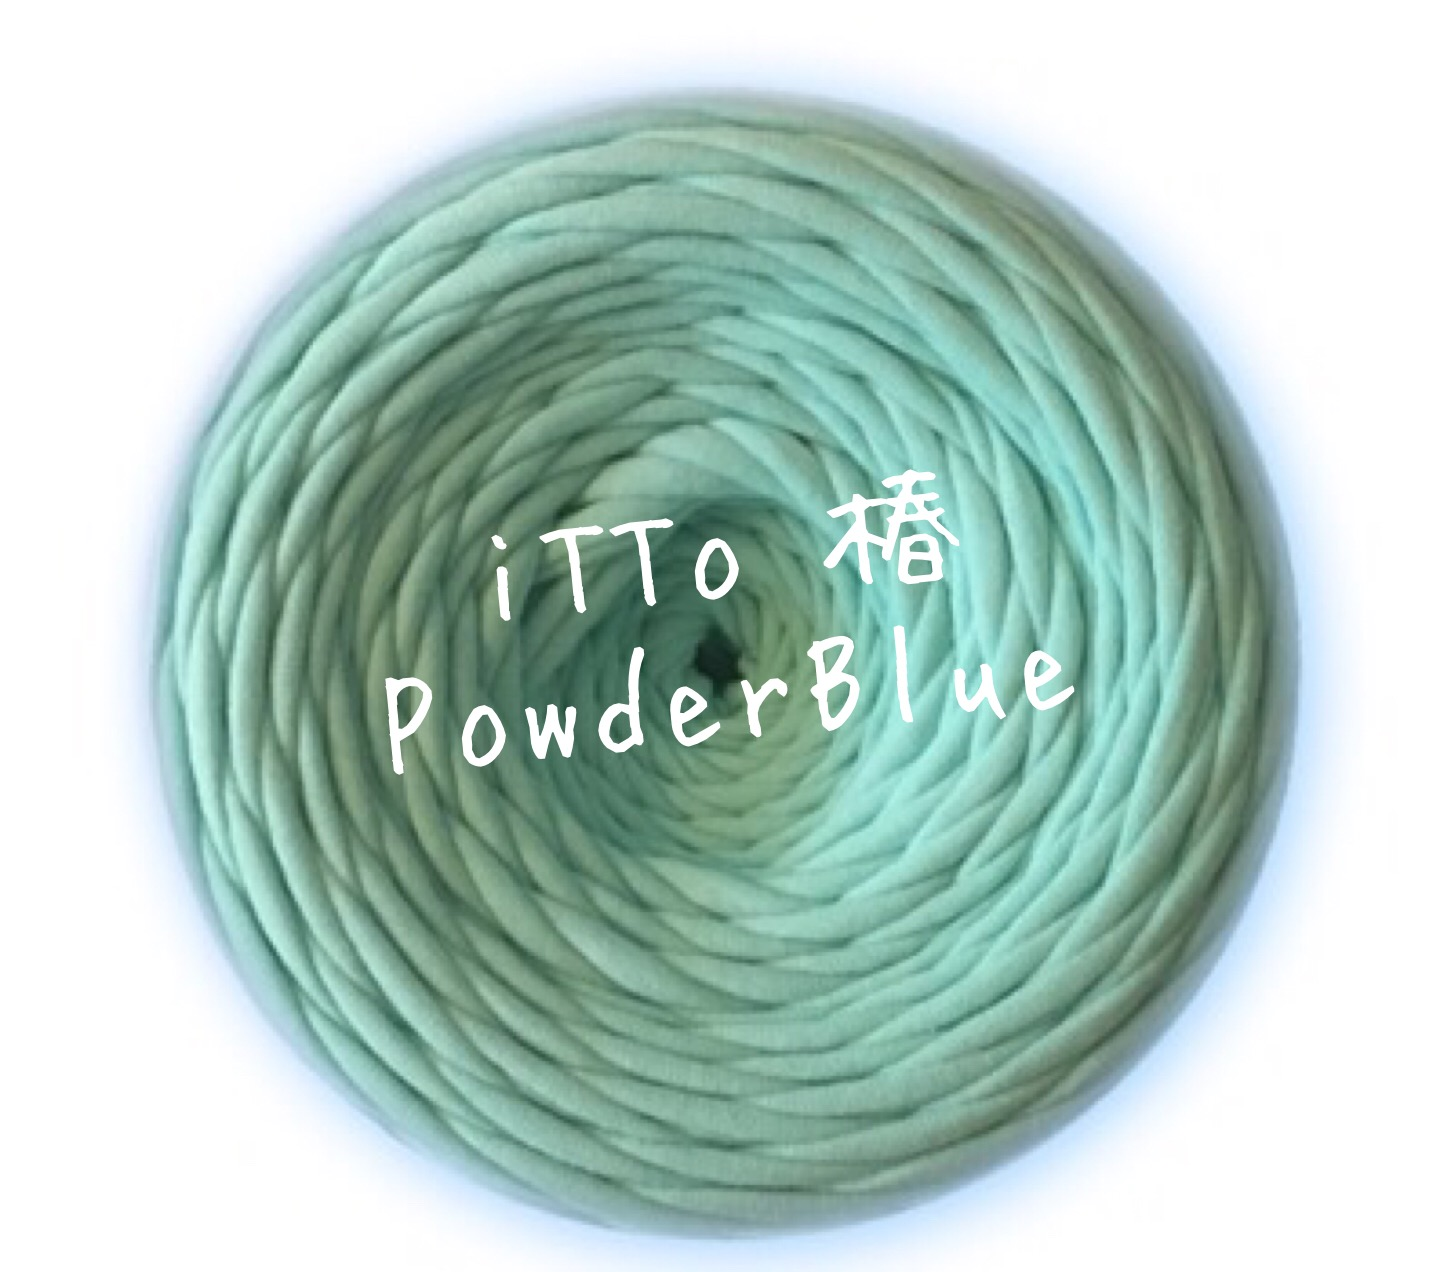 iTTo 椿 Powder Blue 1,850円